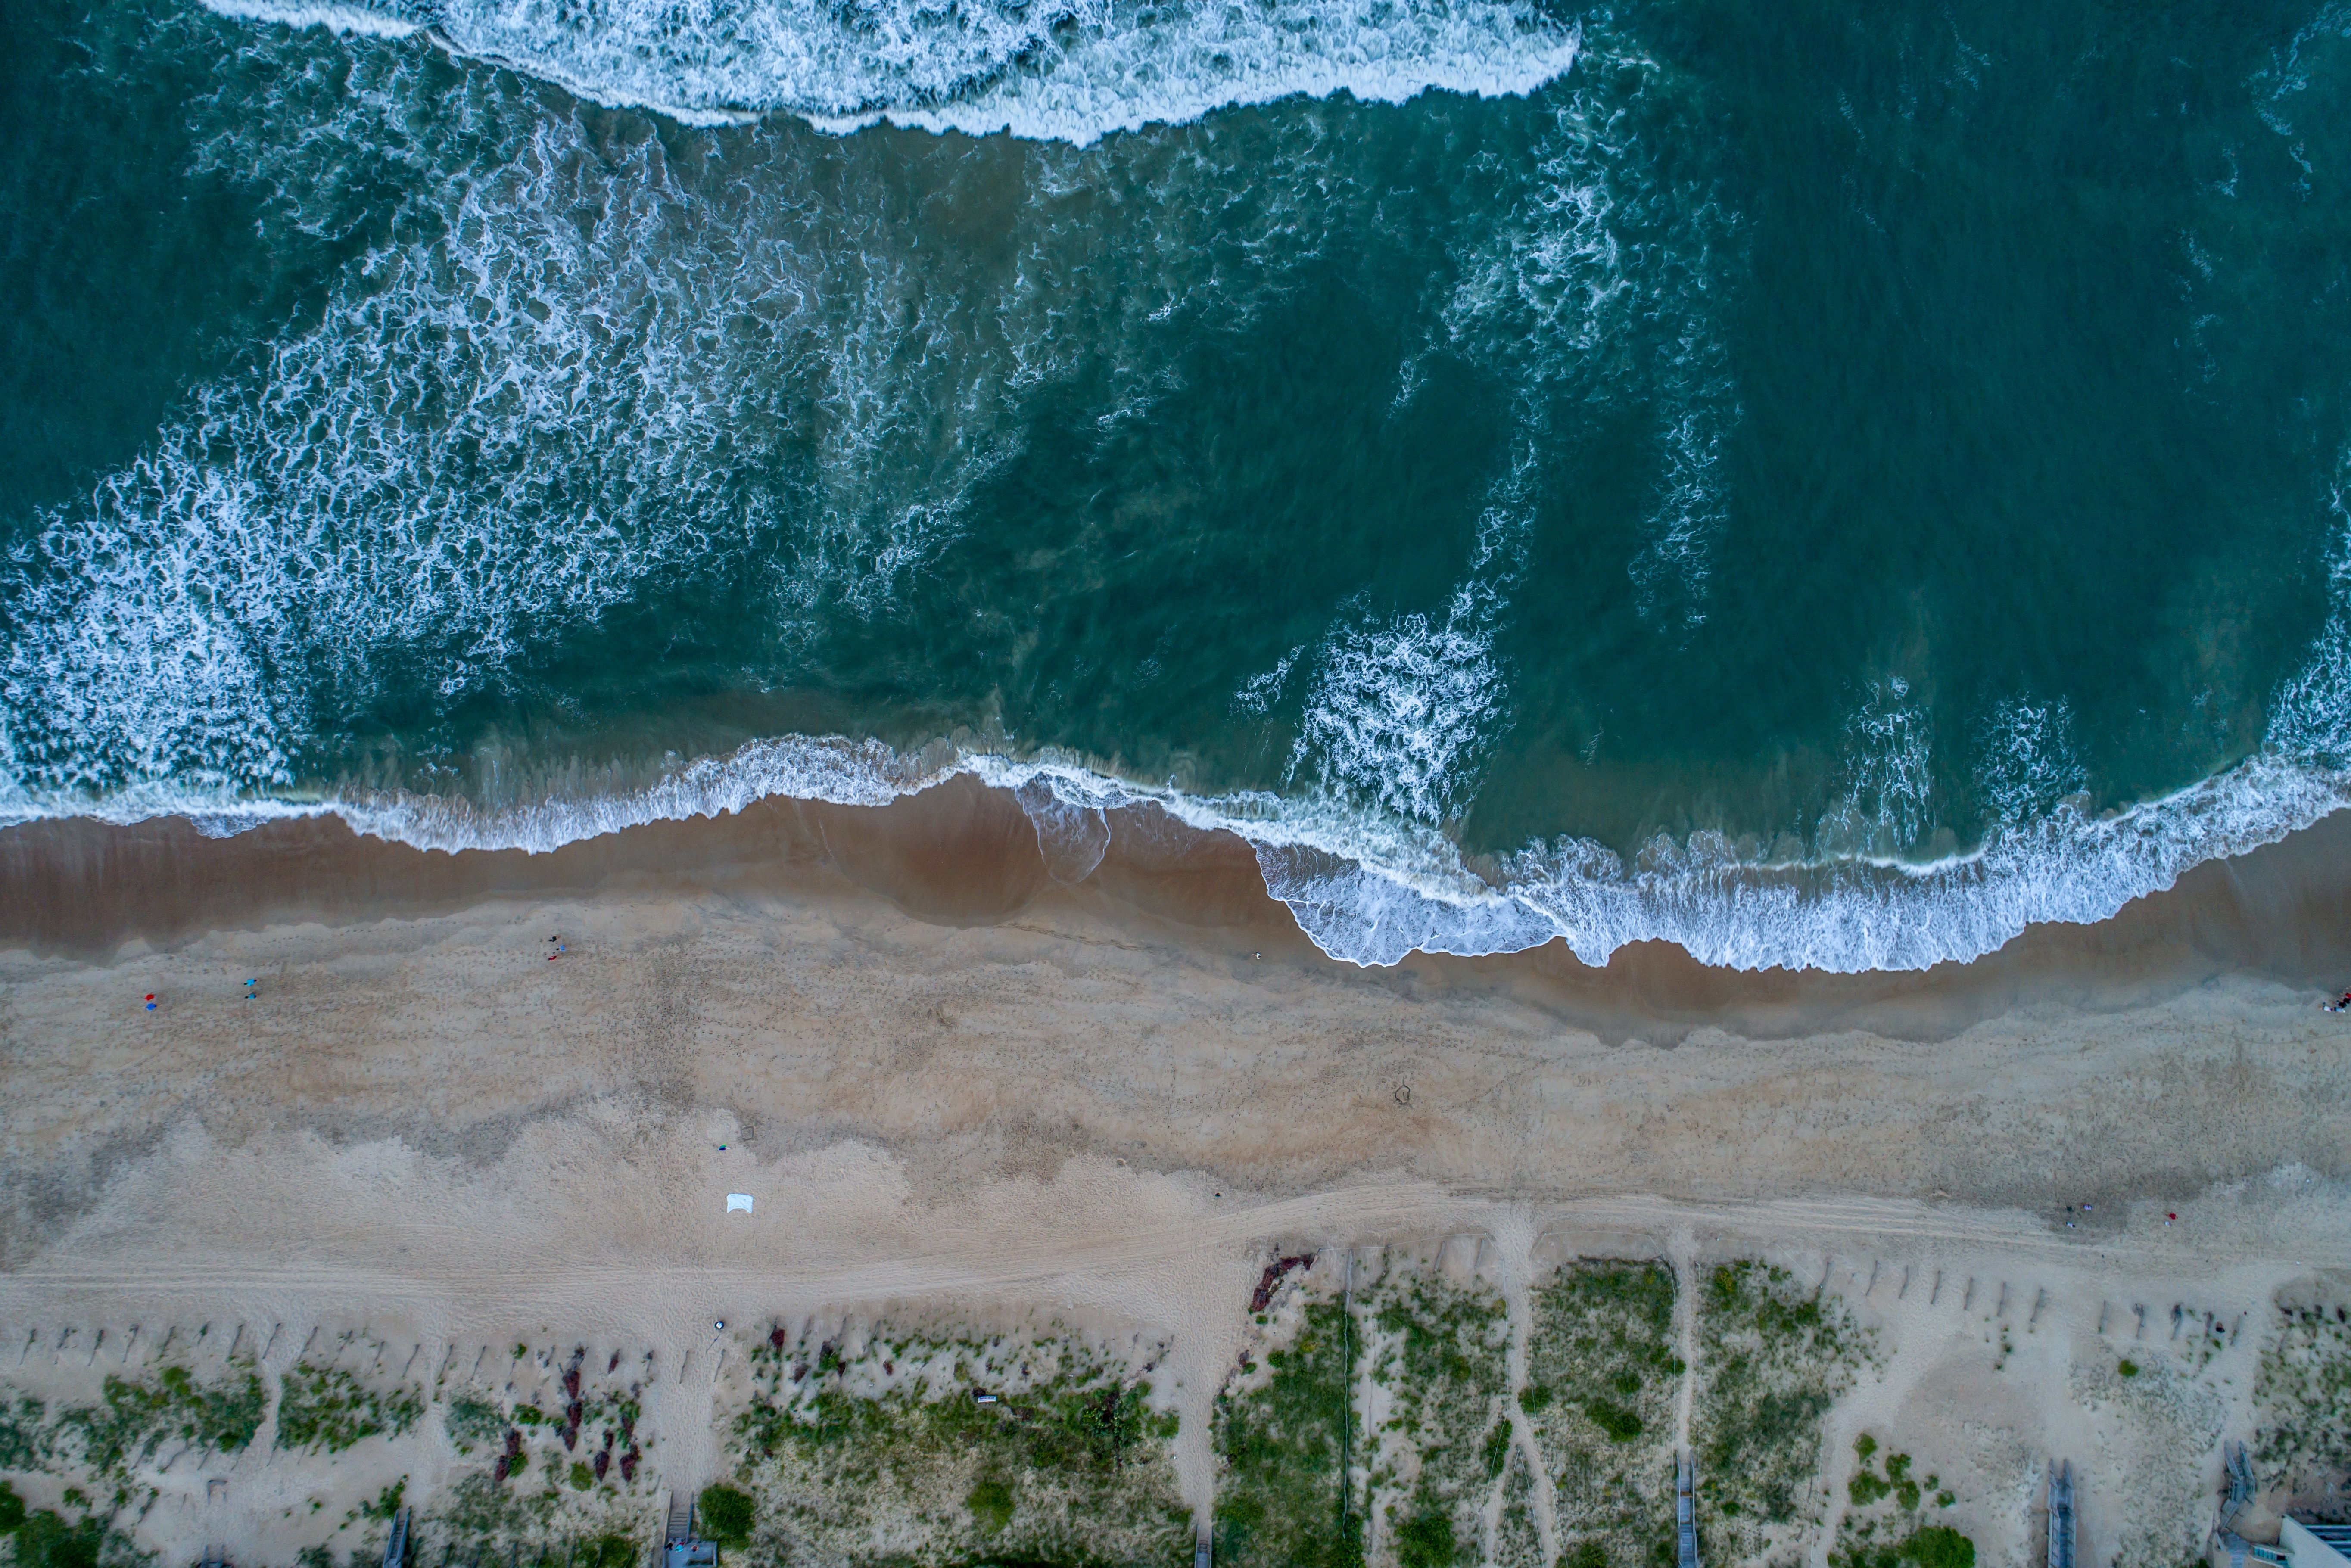 Drone view of the ocean washing on a sand shoreline at Nags Head, North Carolina, United States